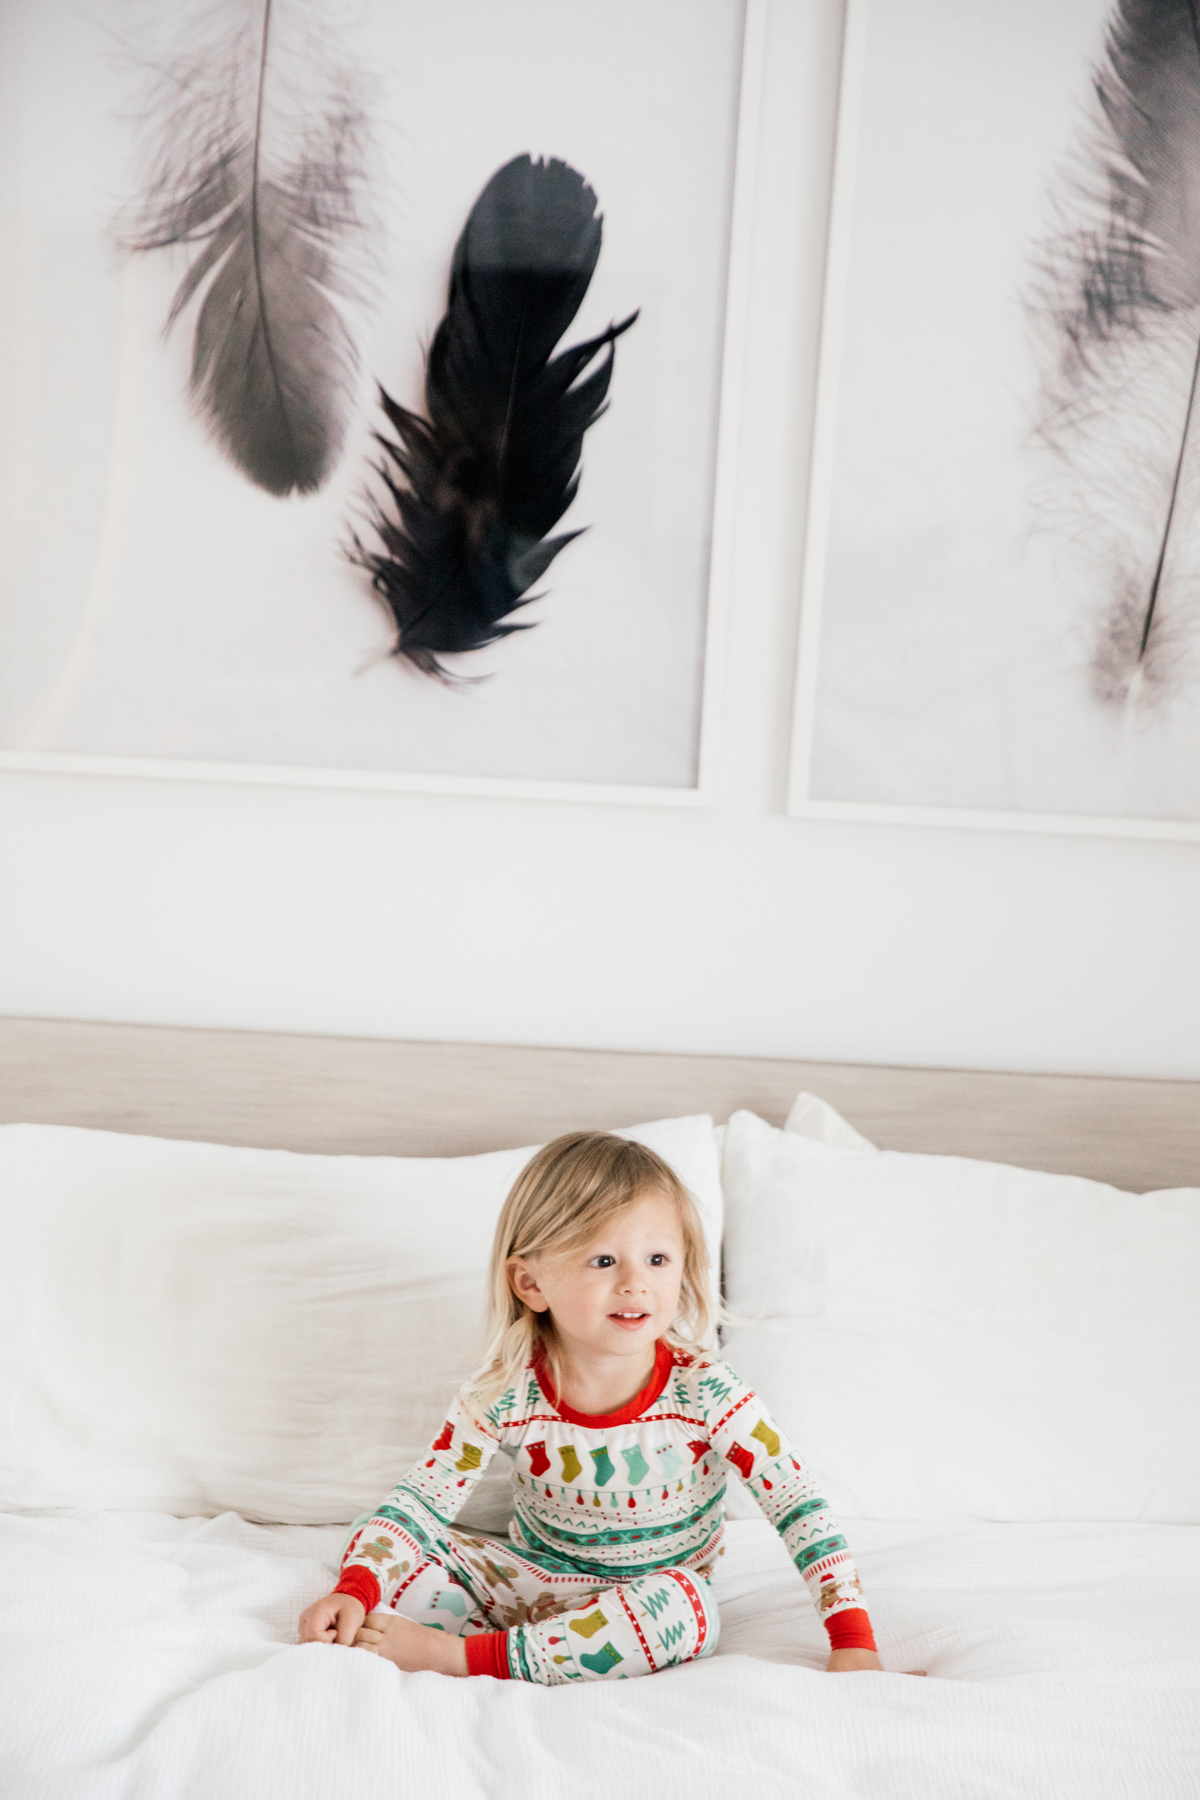 Toddler in Holiday pajamas laughing on the bed